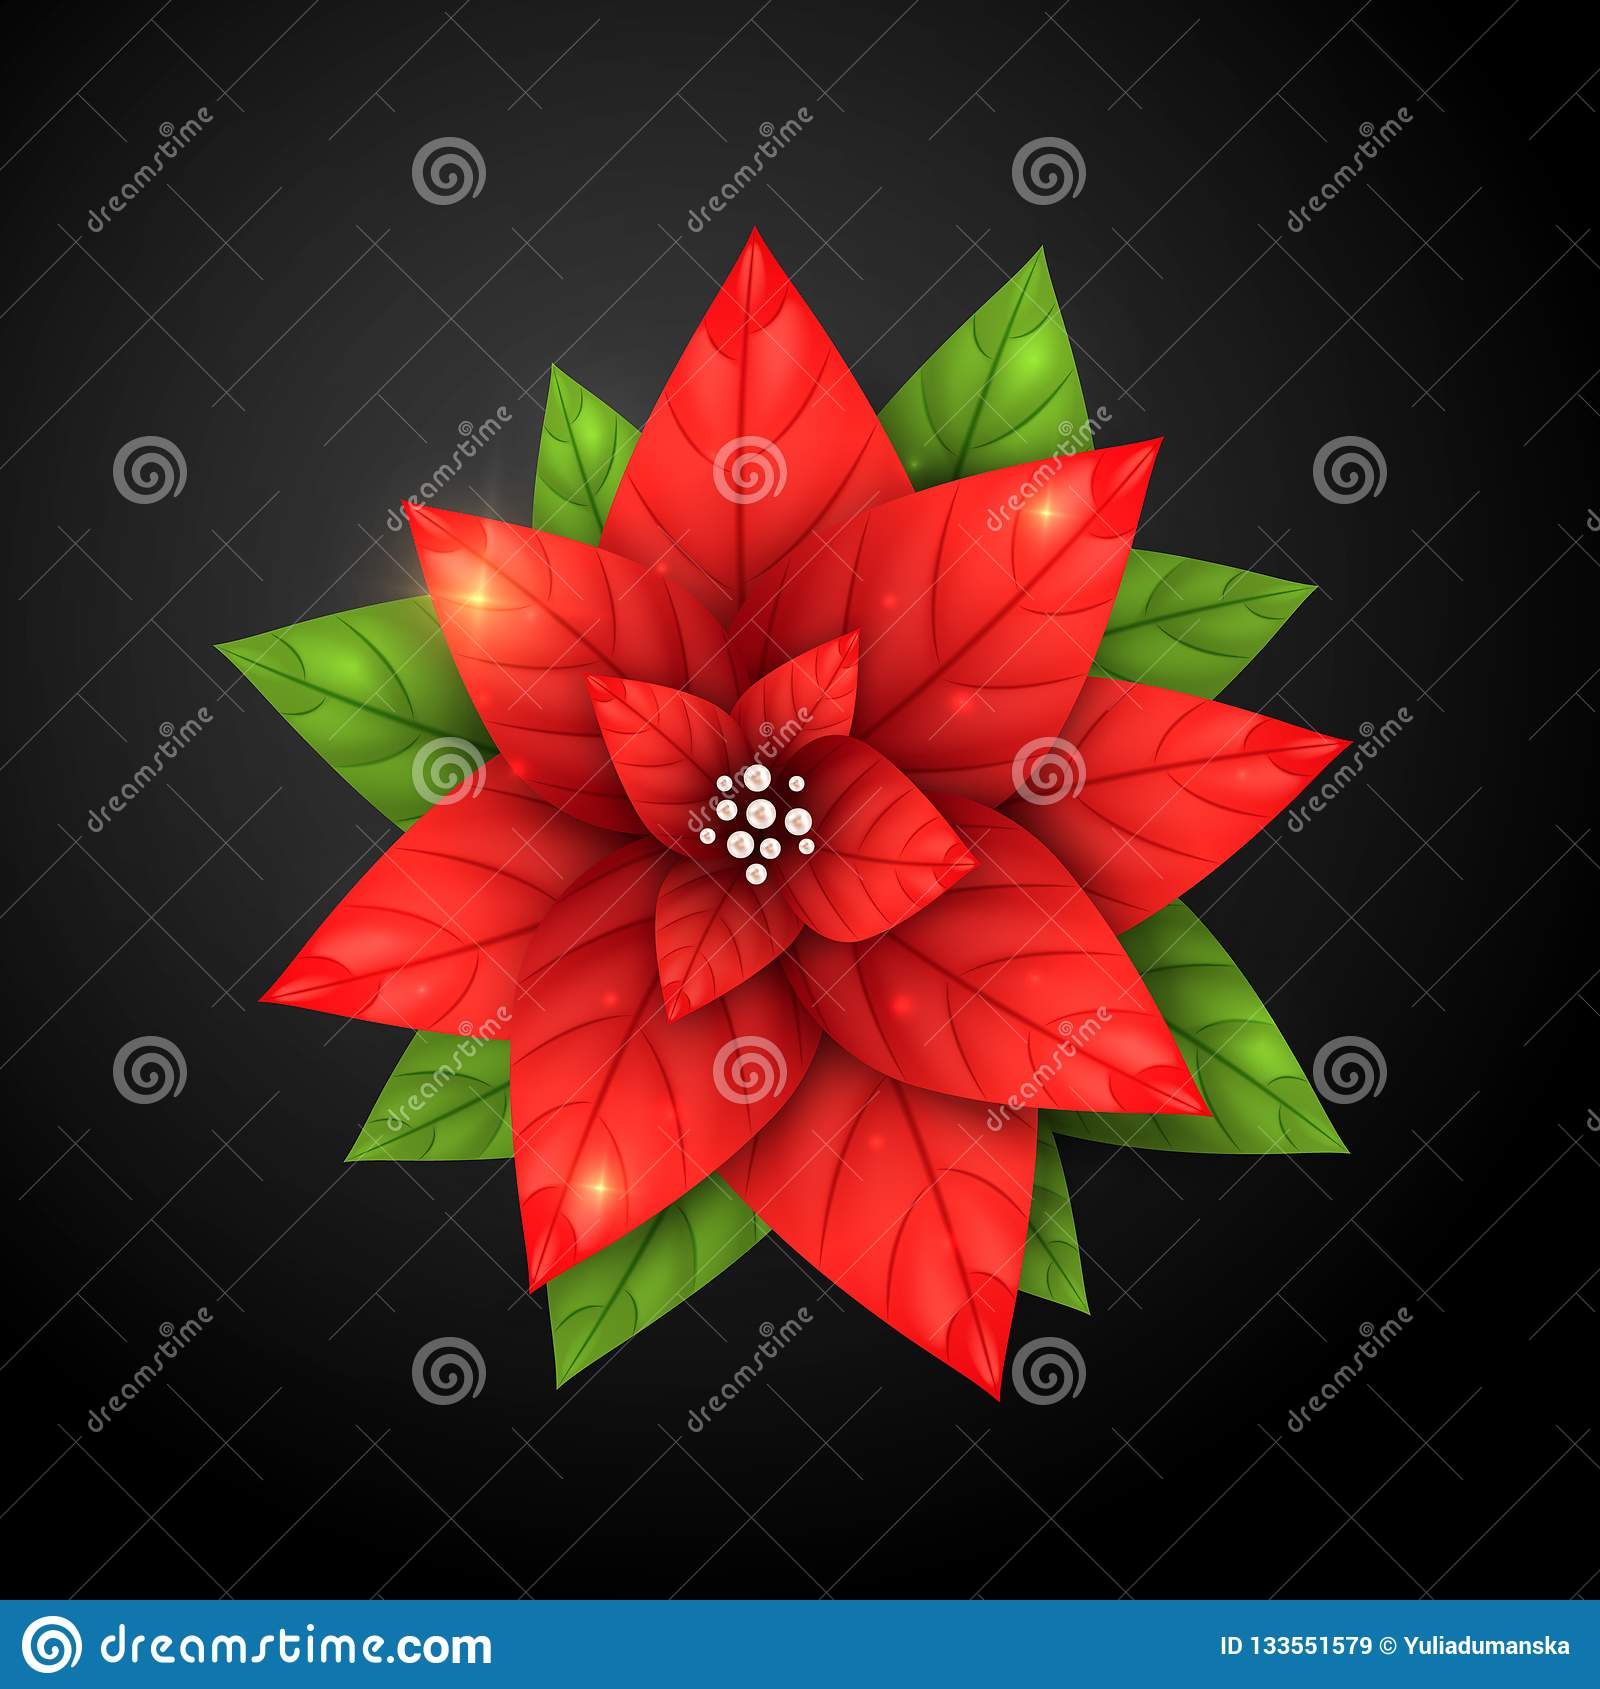 Realistic Poinsettia Flower And Pearl Red Star Plant For Merry